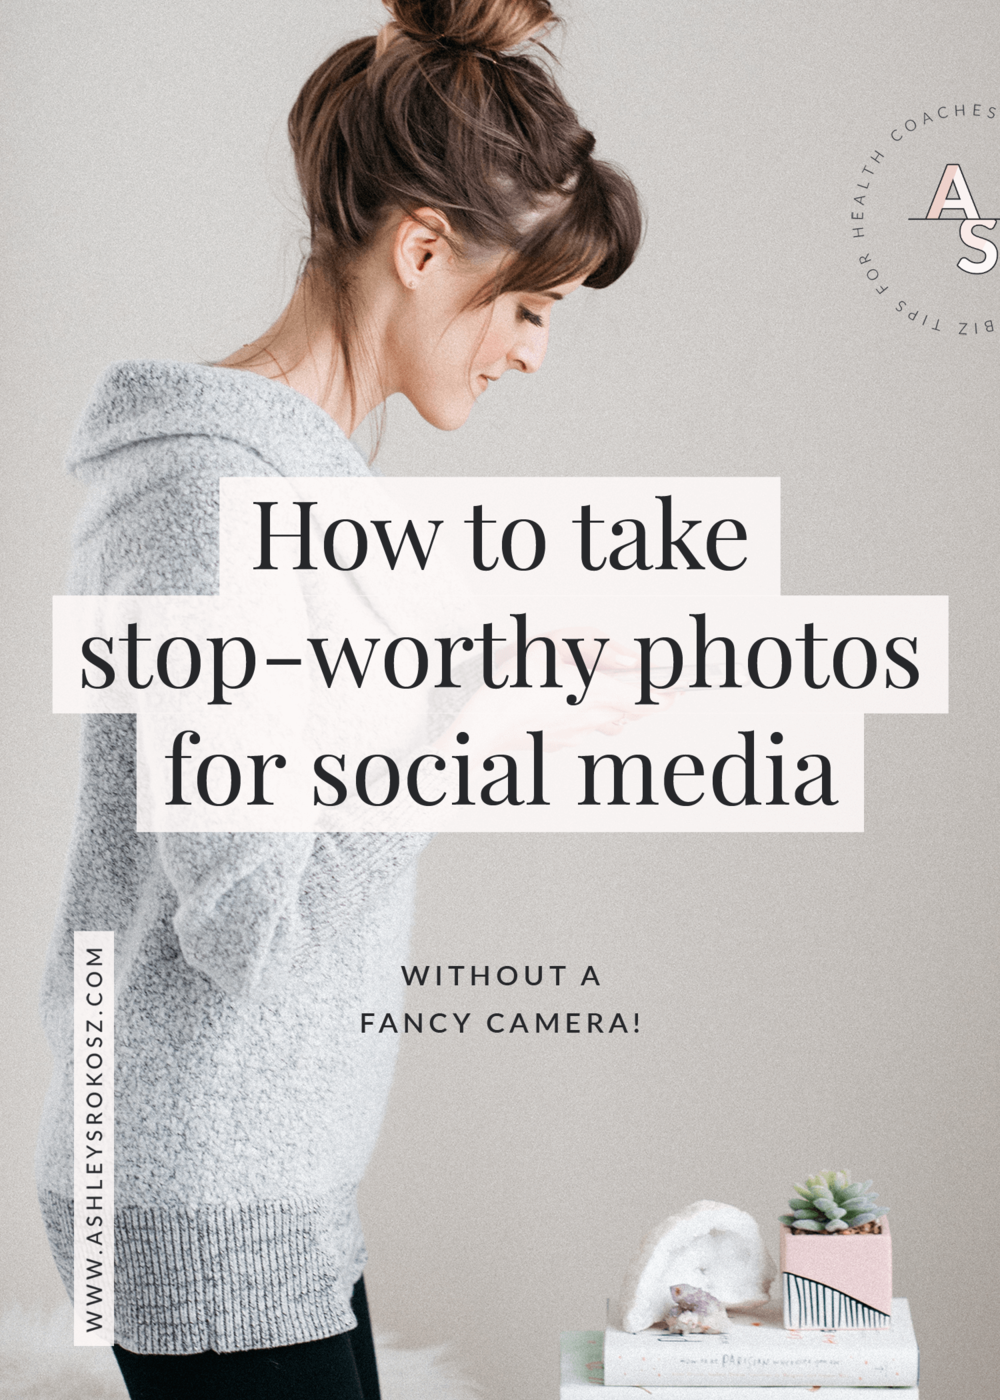 "Have you ever stopped on a beautiful picture on social media and wondered ""how do they DO that?!"". Social media photography isn't as hard as you think, even when you're a nutritionist or health coach. Click here for 4 steps to taking beautiful photos for social media in less than 5 minutes (without a fancy camera). #healthcoach #healthcoachbusiness #nutritionist #nutritionbusiness #becomeahealthcoach"